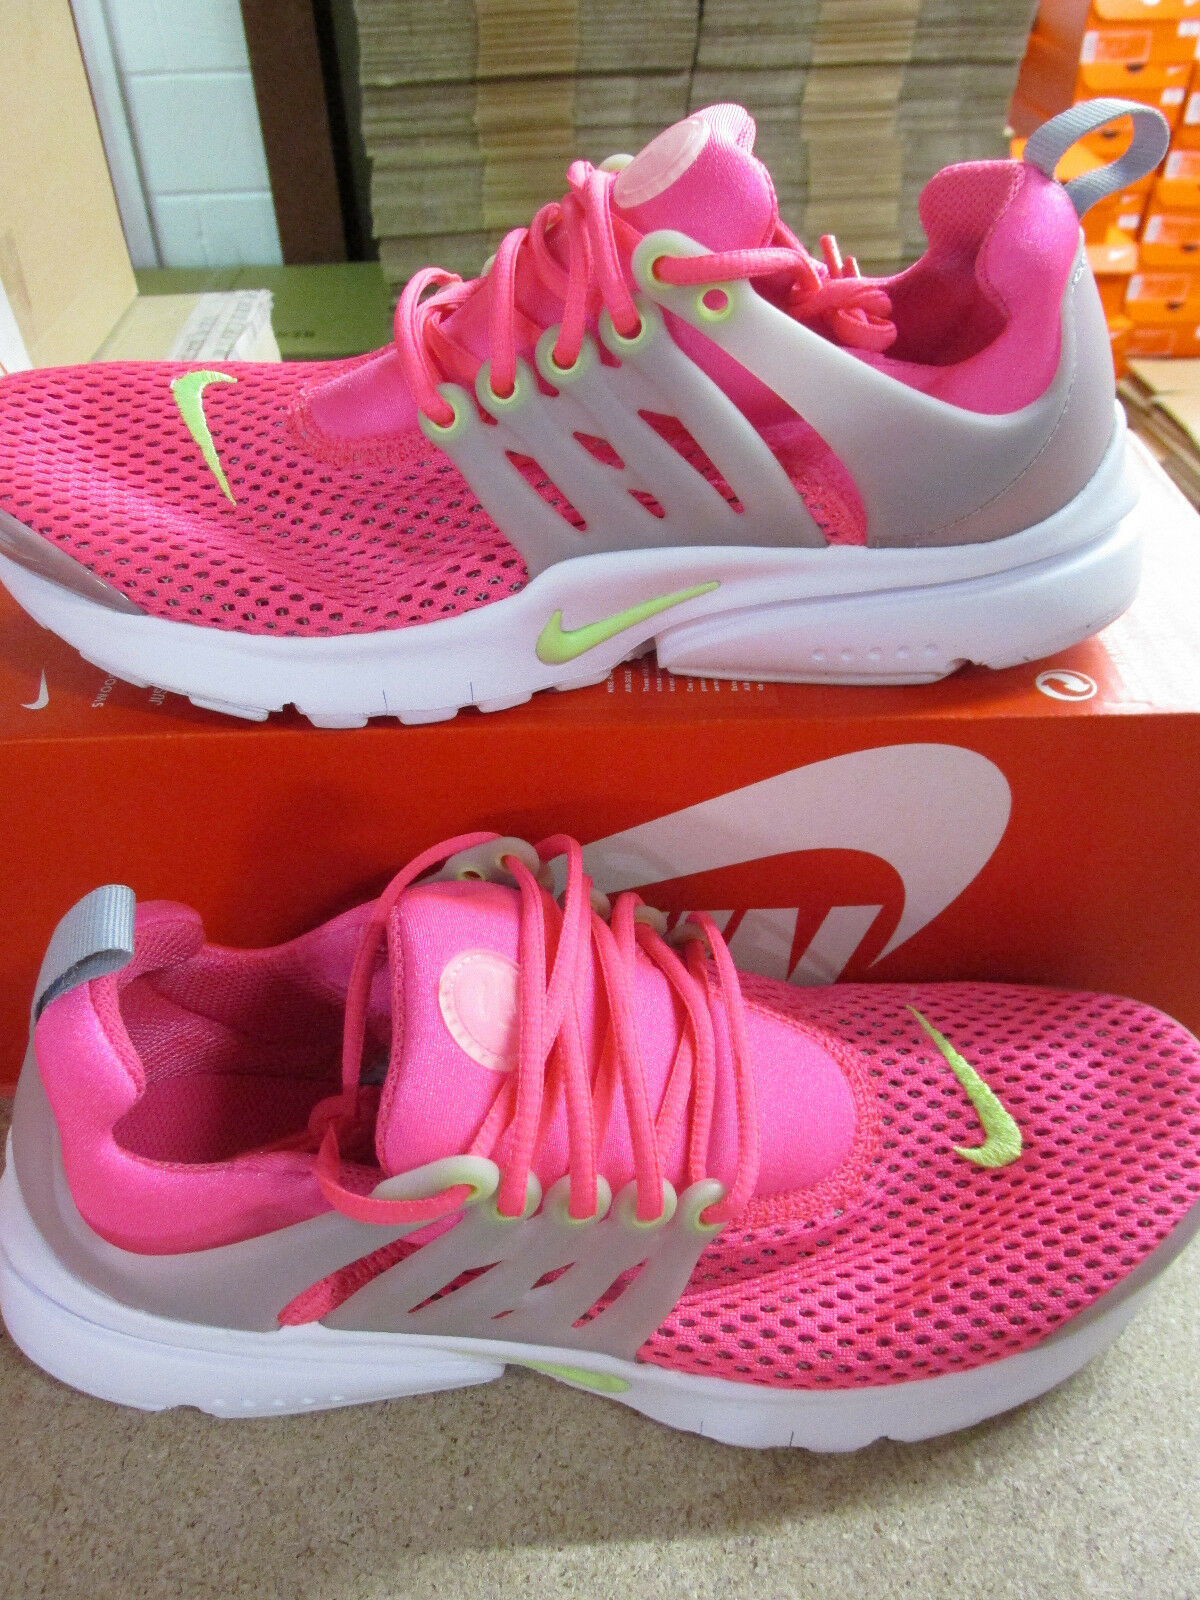 Descuento por tiempo limitado Nike presto BR (GS) youth running trainers 832251 631 sneakers shoes CLEARANCE